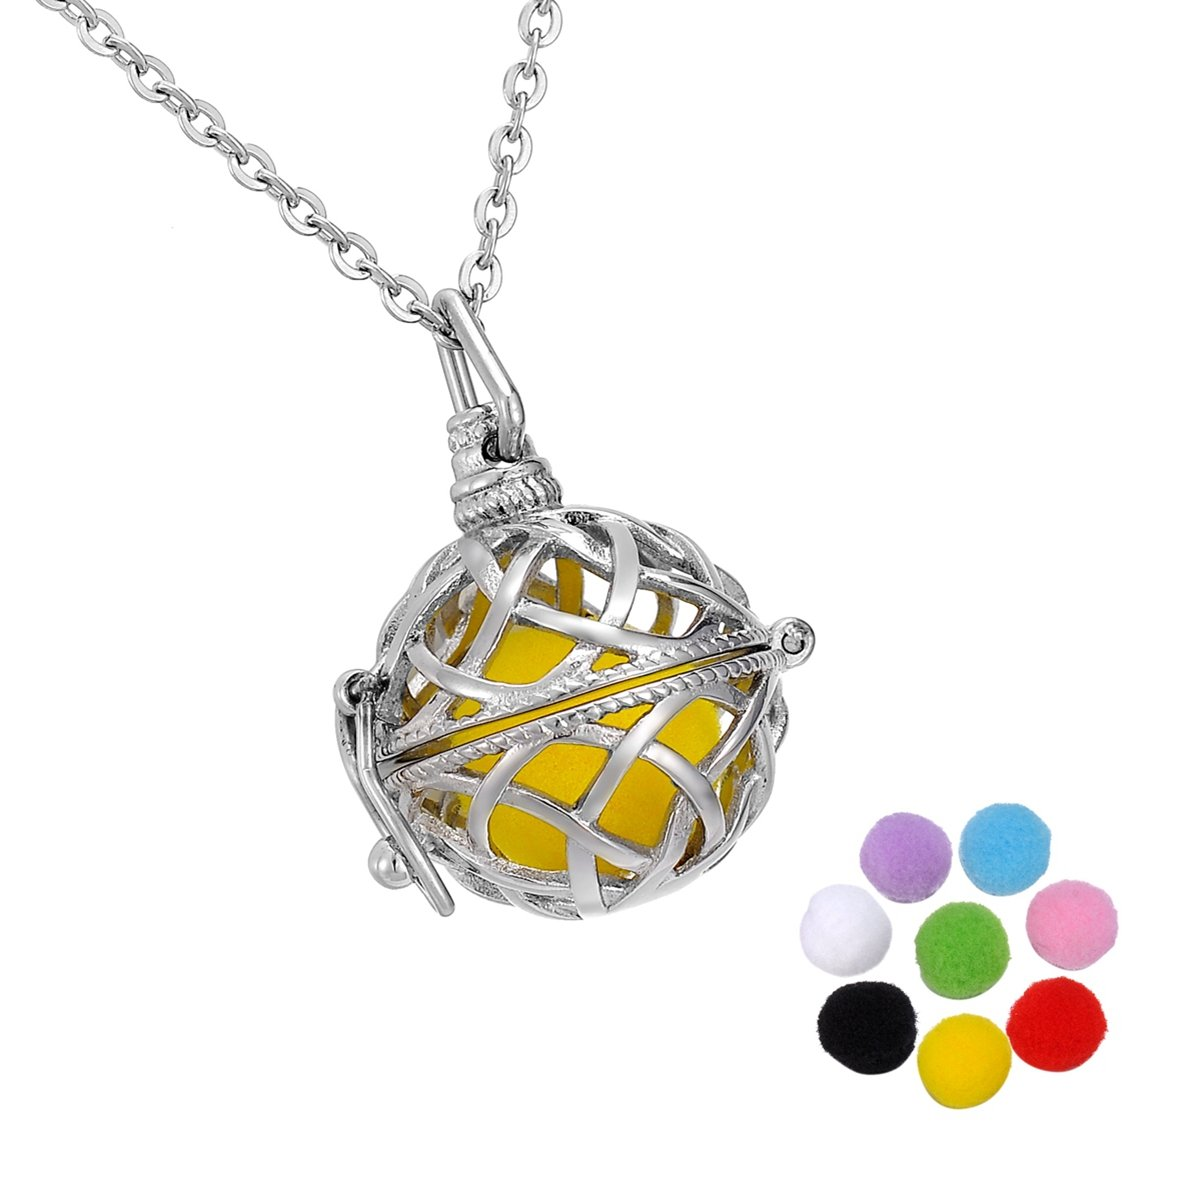 HooAMI Aromatherapy Essential Oil Diffuser Necklace - Celtic Knot Round Ball Stainless Steel Pendant Cage Locket TY BETY111423